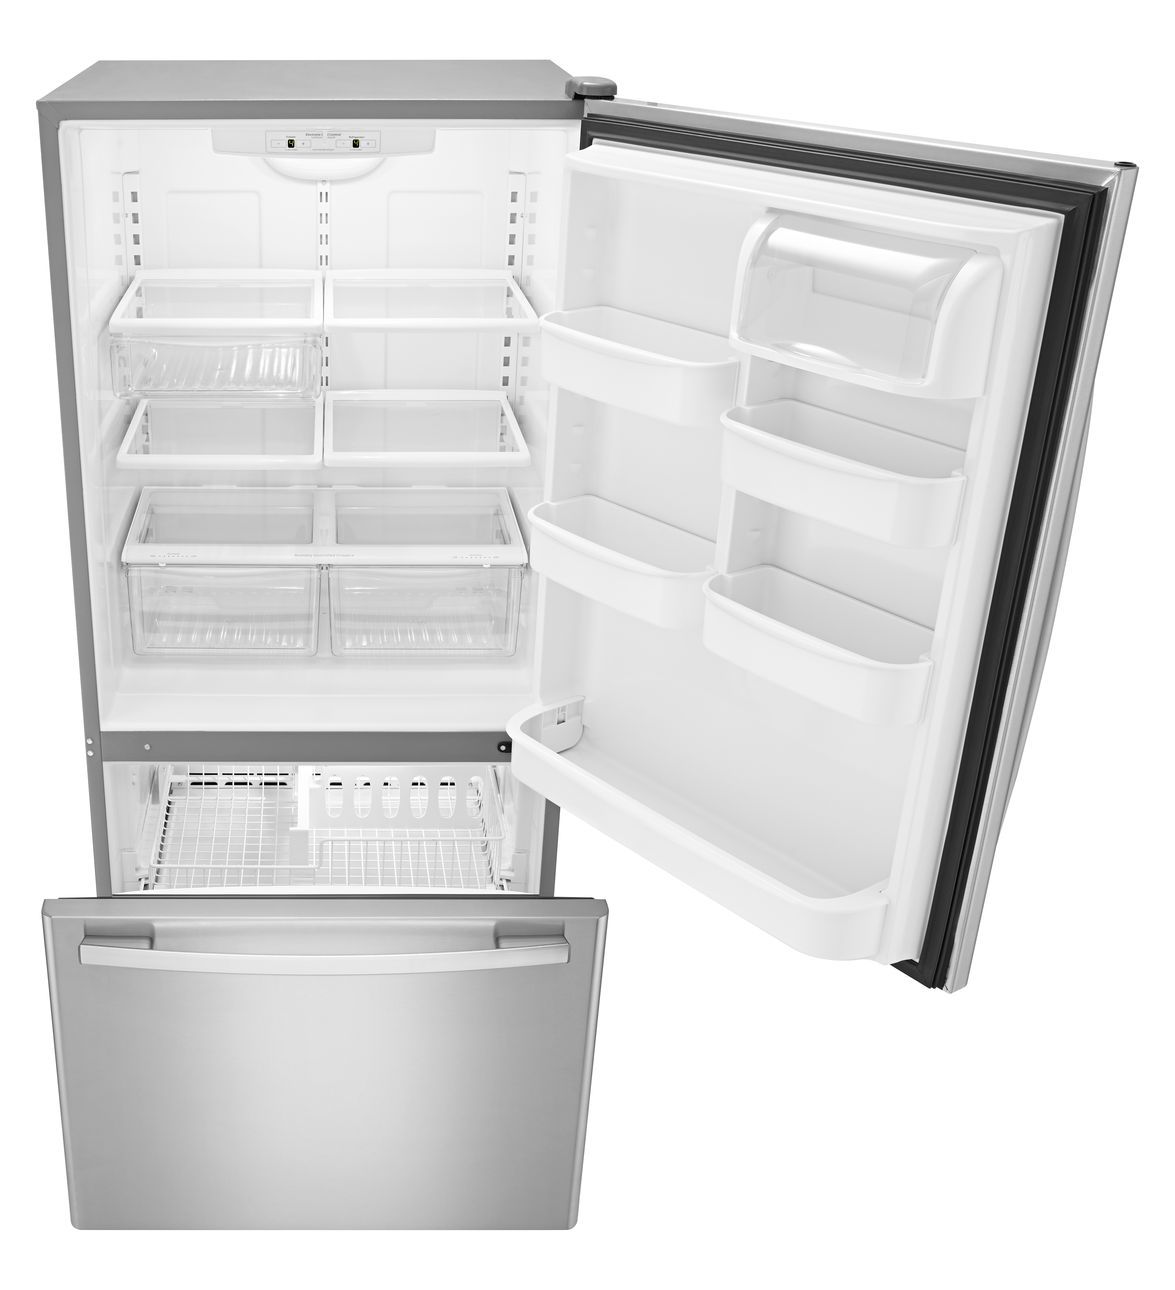 Fridges Canada Amana 33 Inch Wide Amana Bottom Freezer Refrigerator With Easyfreezer Pull Out Drawer 22 Cu Ft Capacity